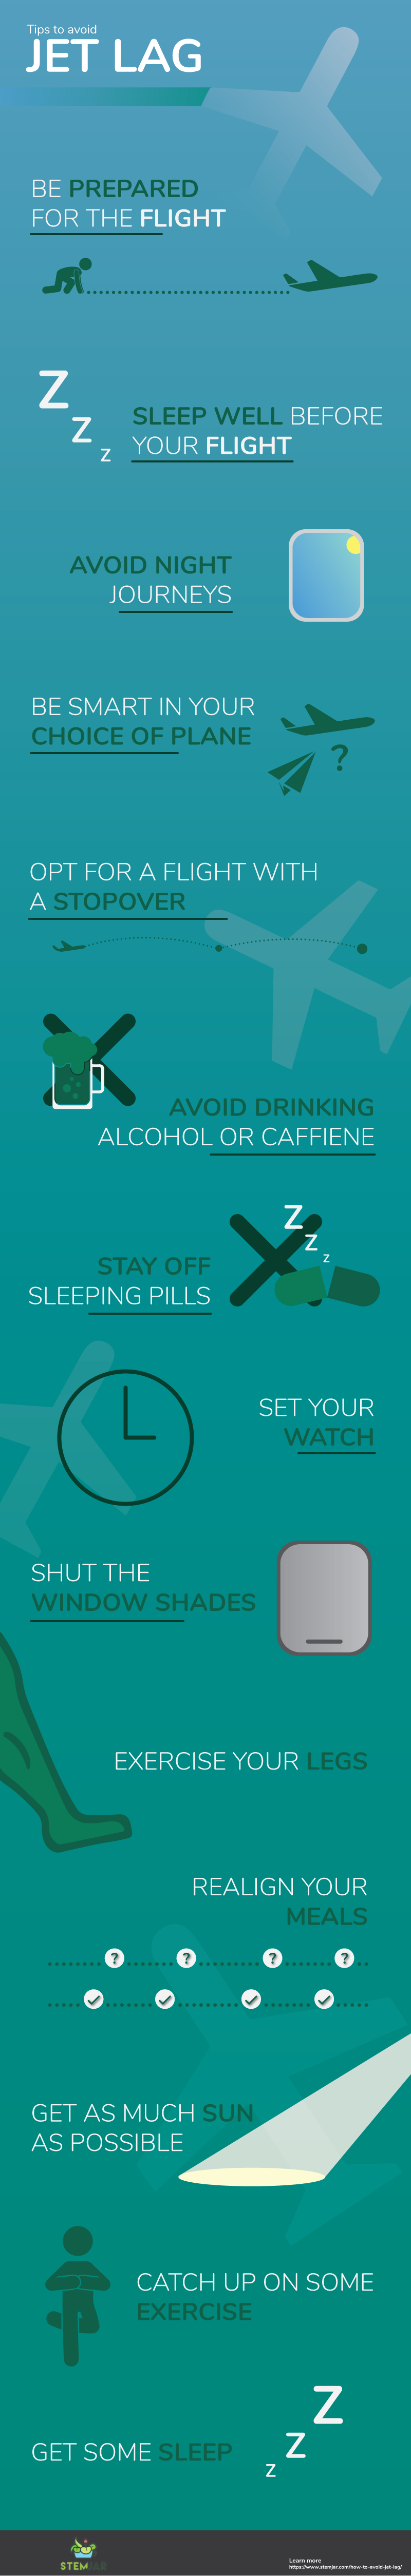 How to Avoid Jet Lag info graphic